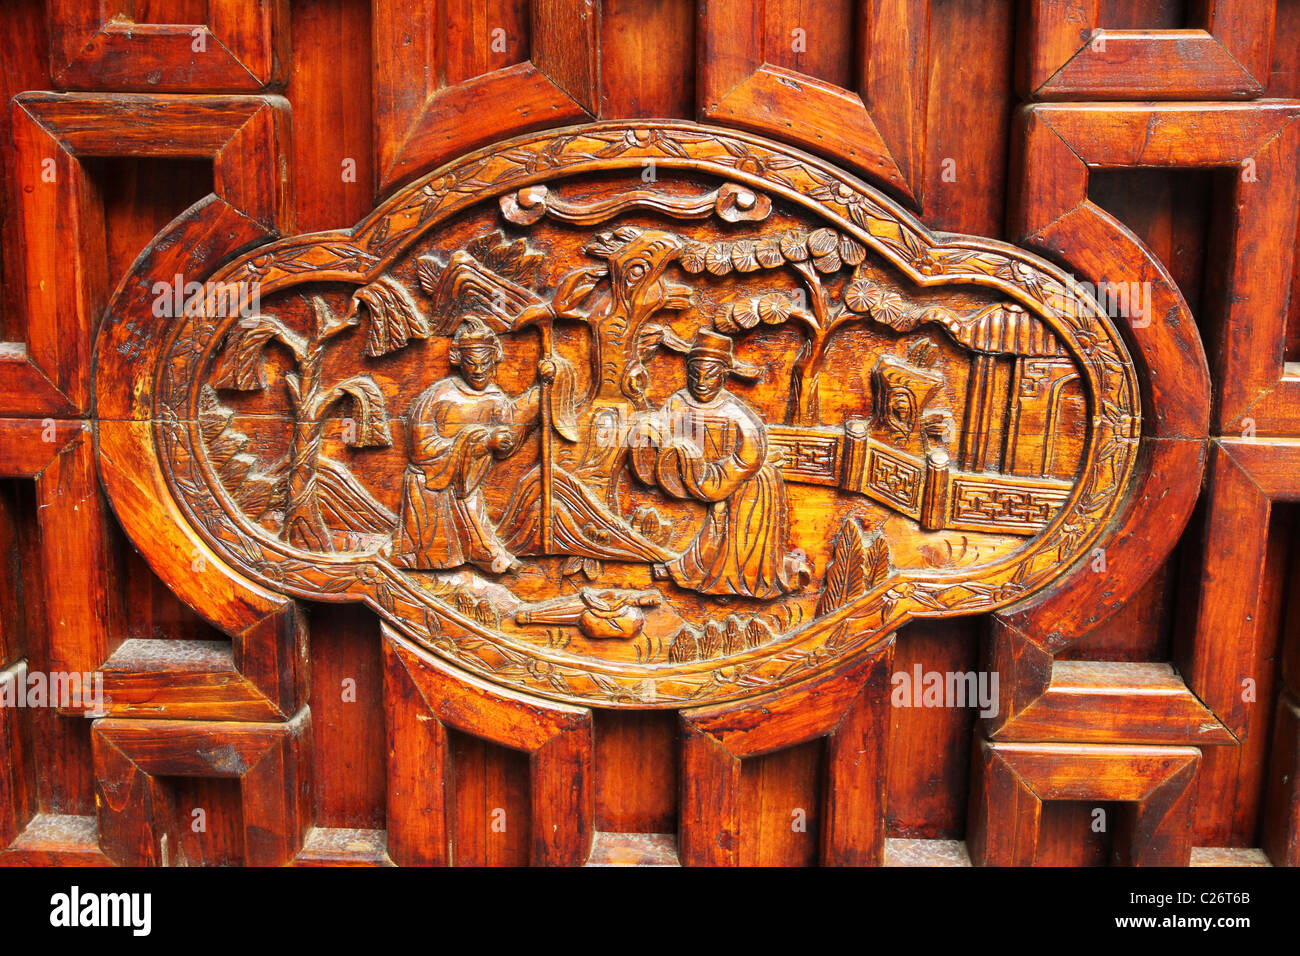 Wood carving patterns stock photos & wood carving patterns stock